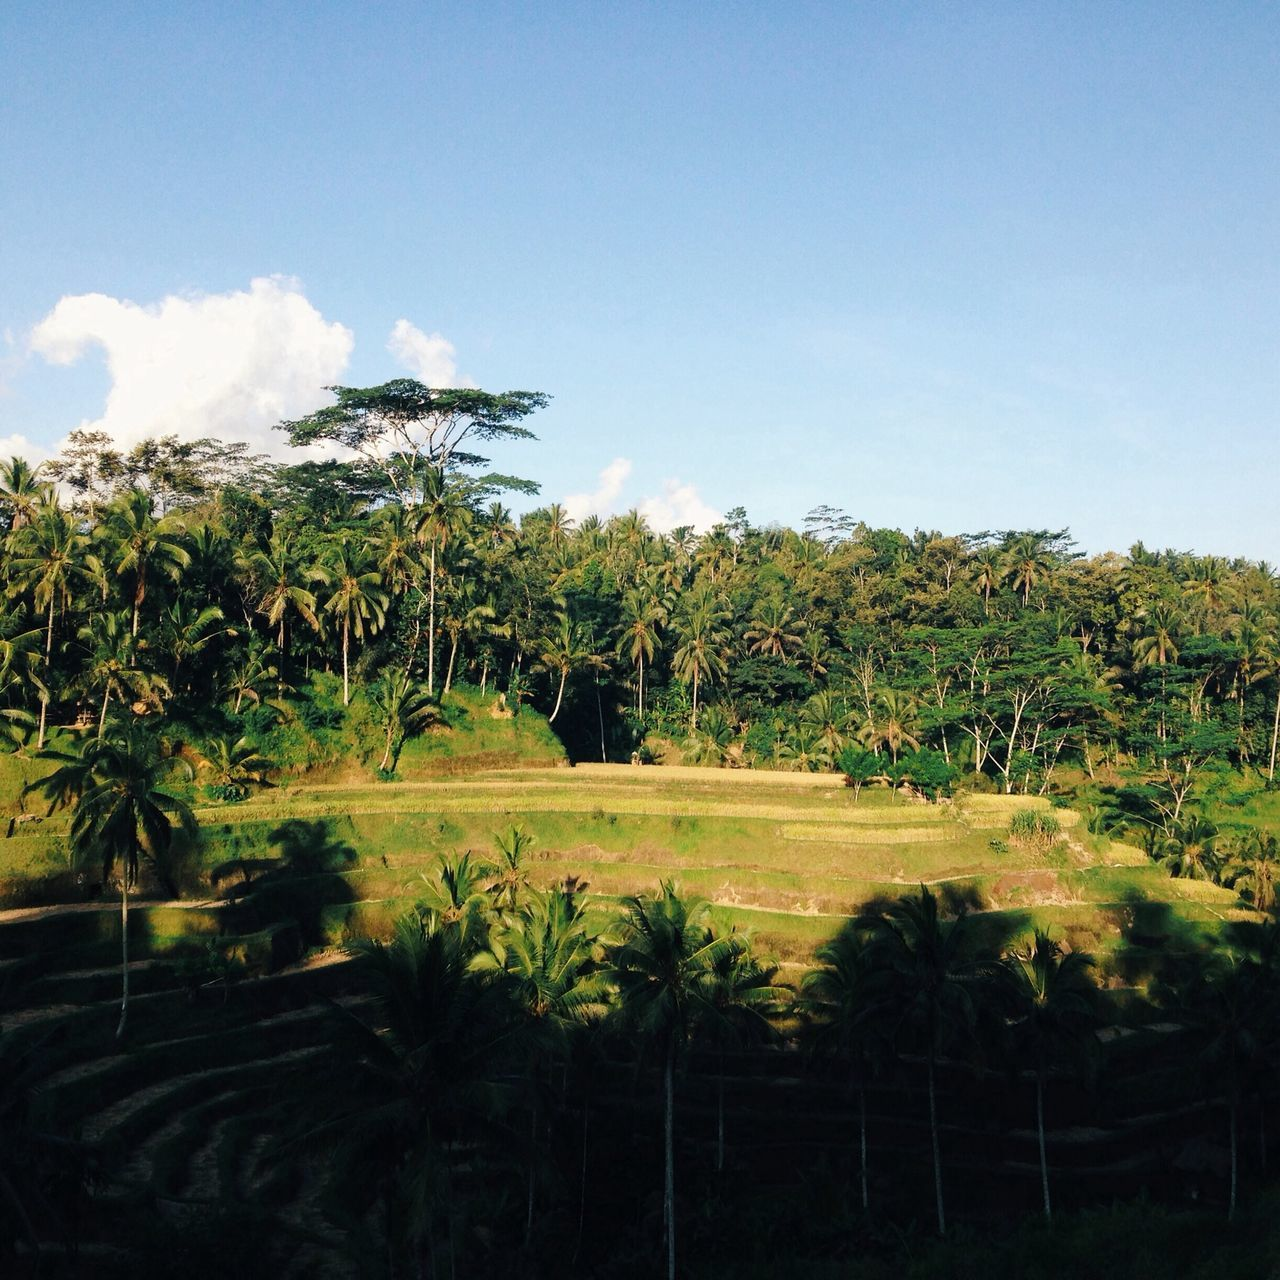 High Angle View Of Palm Trees On Grassy Field Against Sky